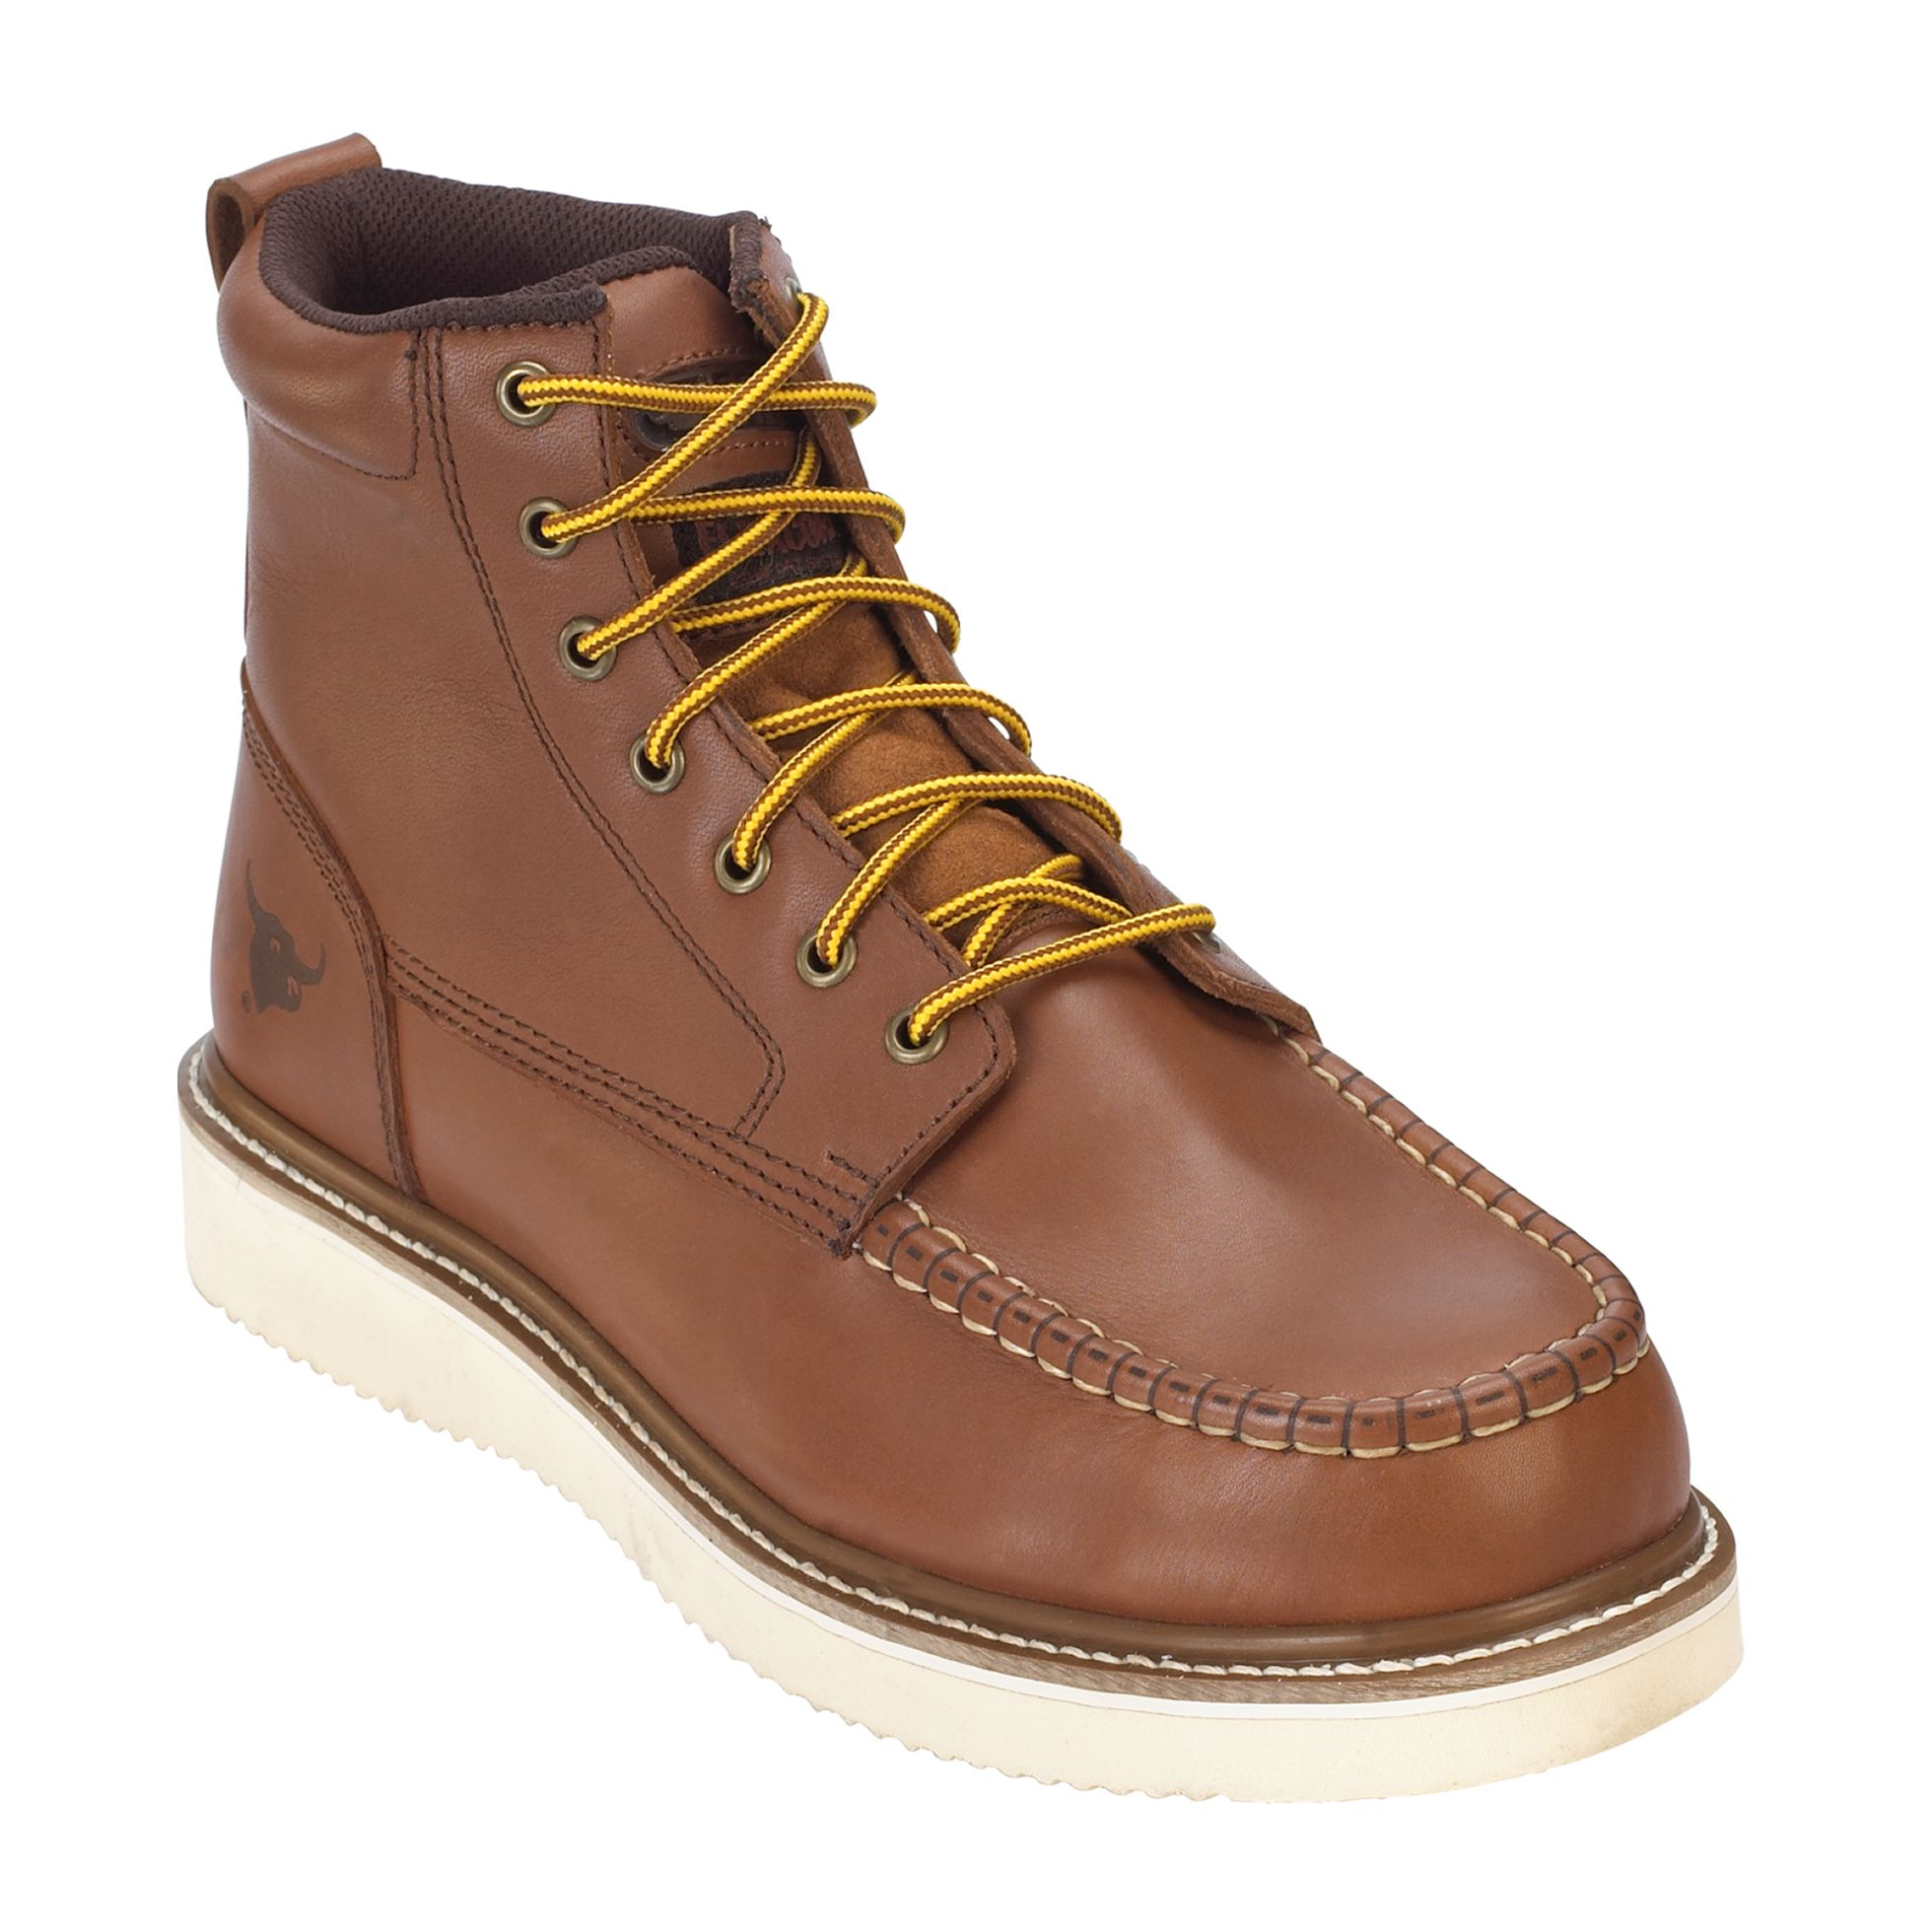 Men's Jonah Moc Toe Work Boot - Brown